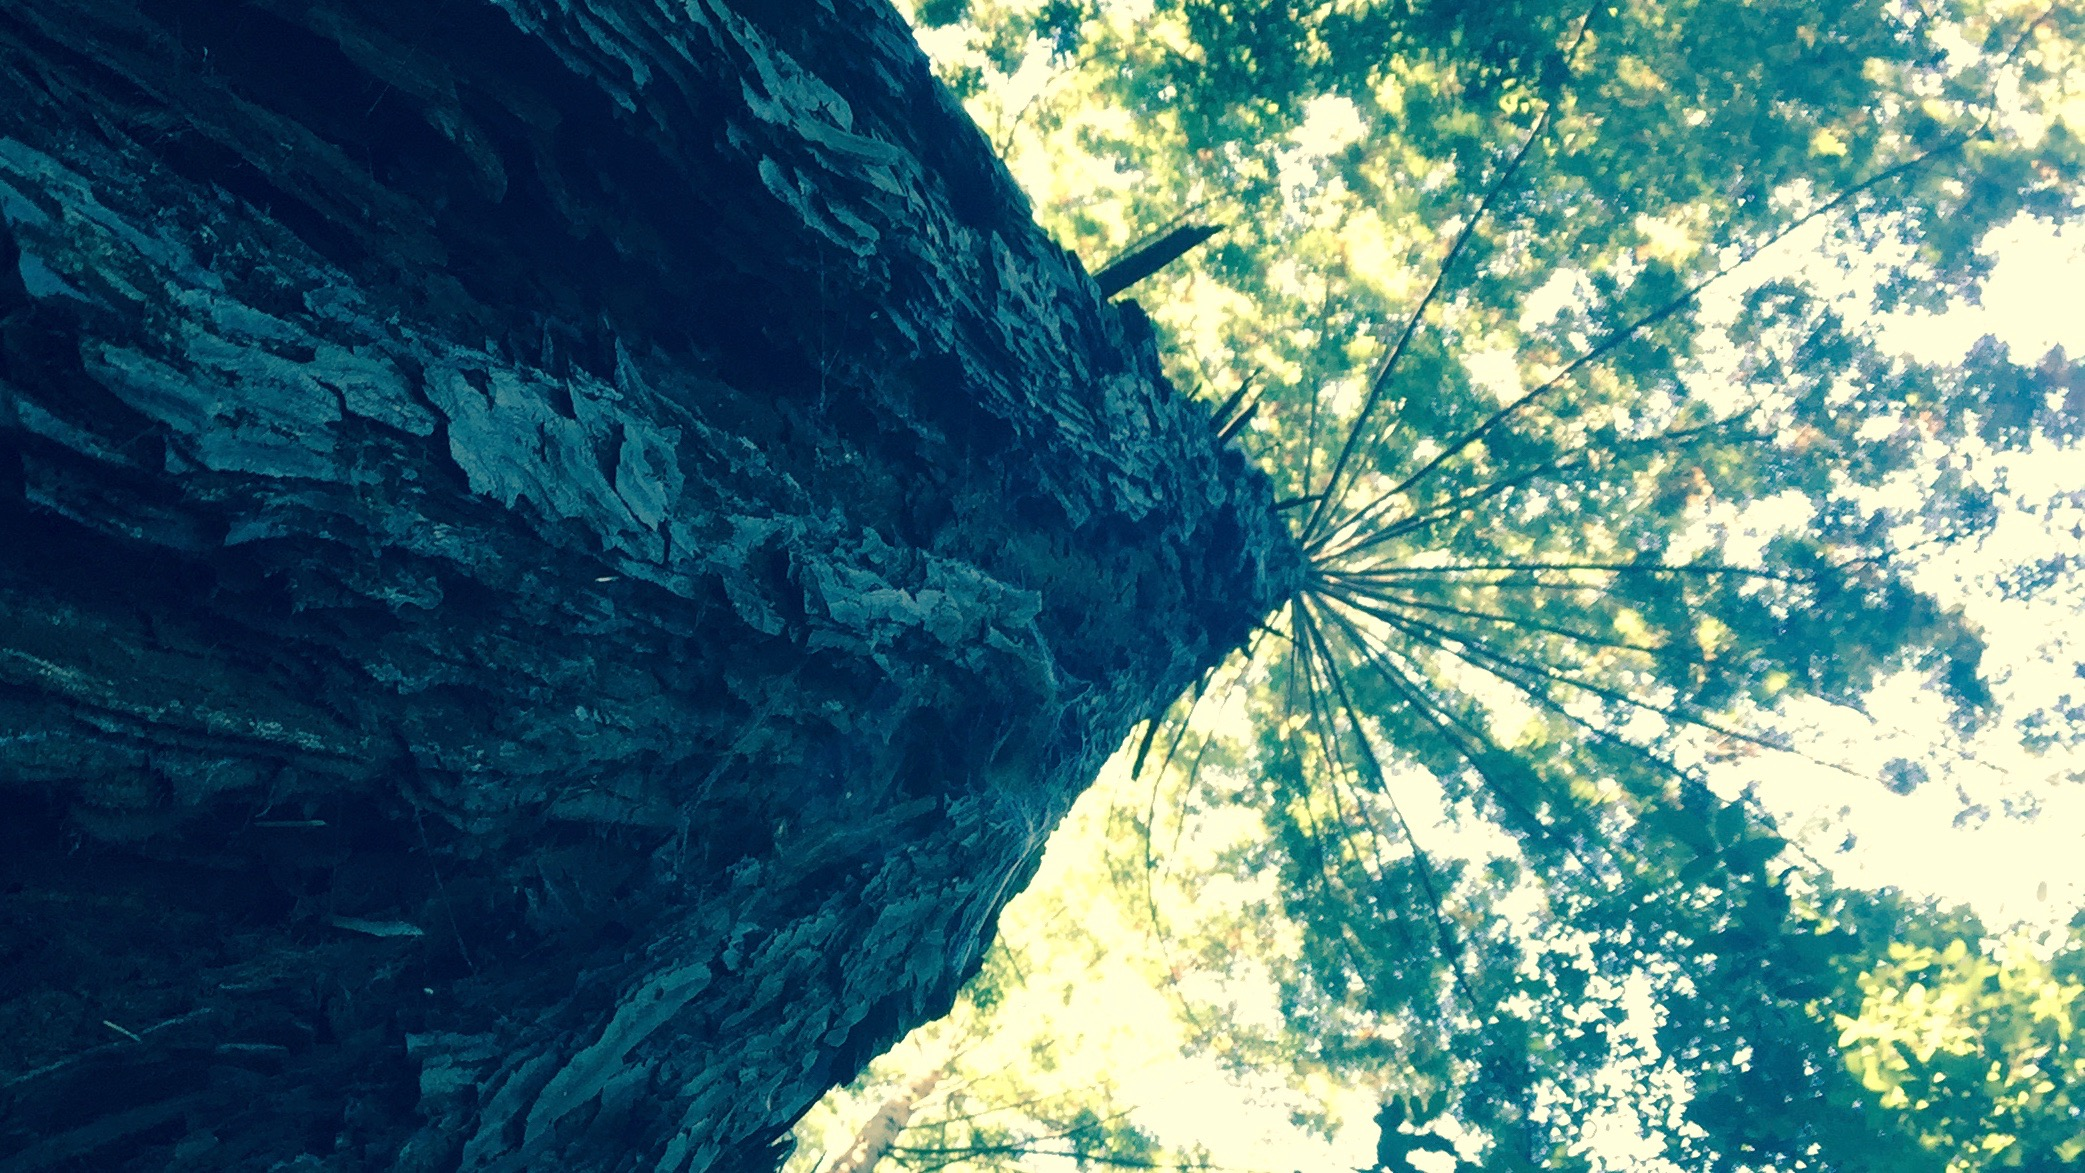 Redwood seen from the trunk up/